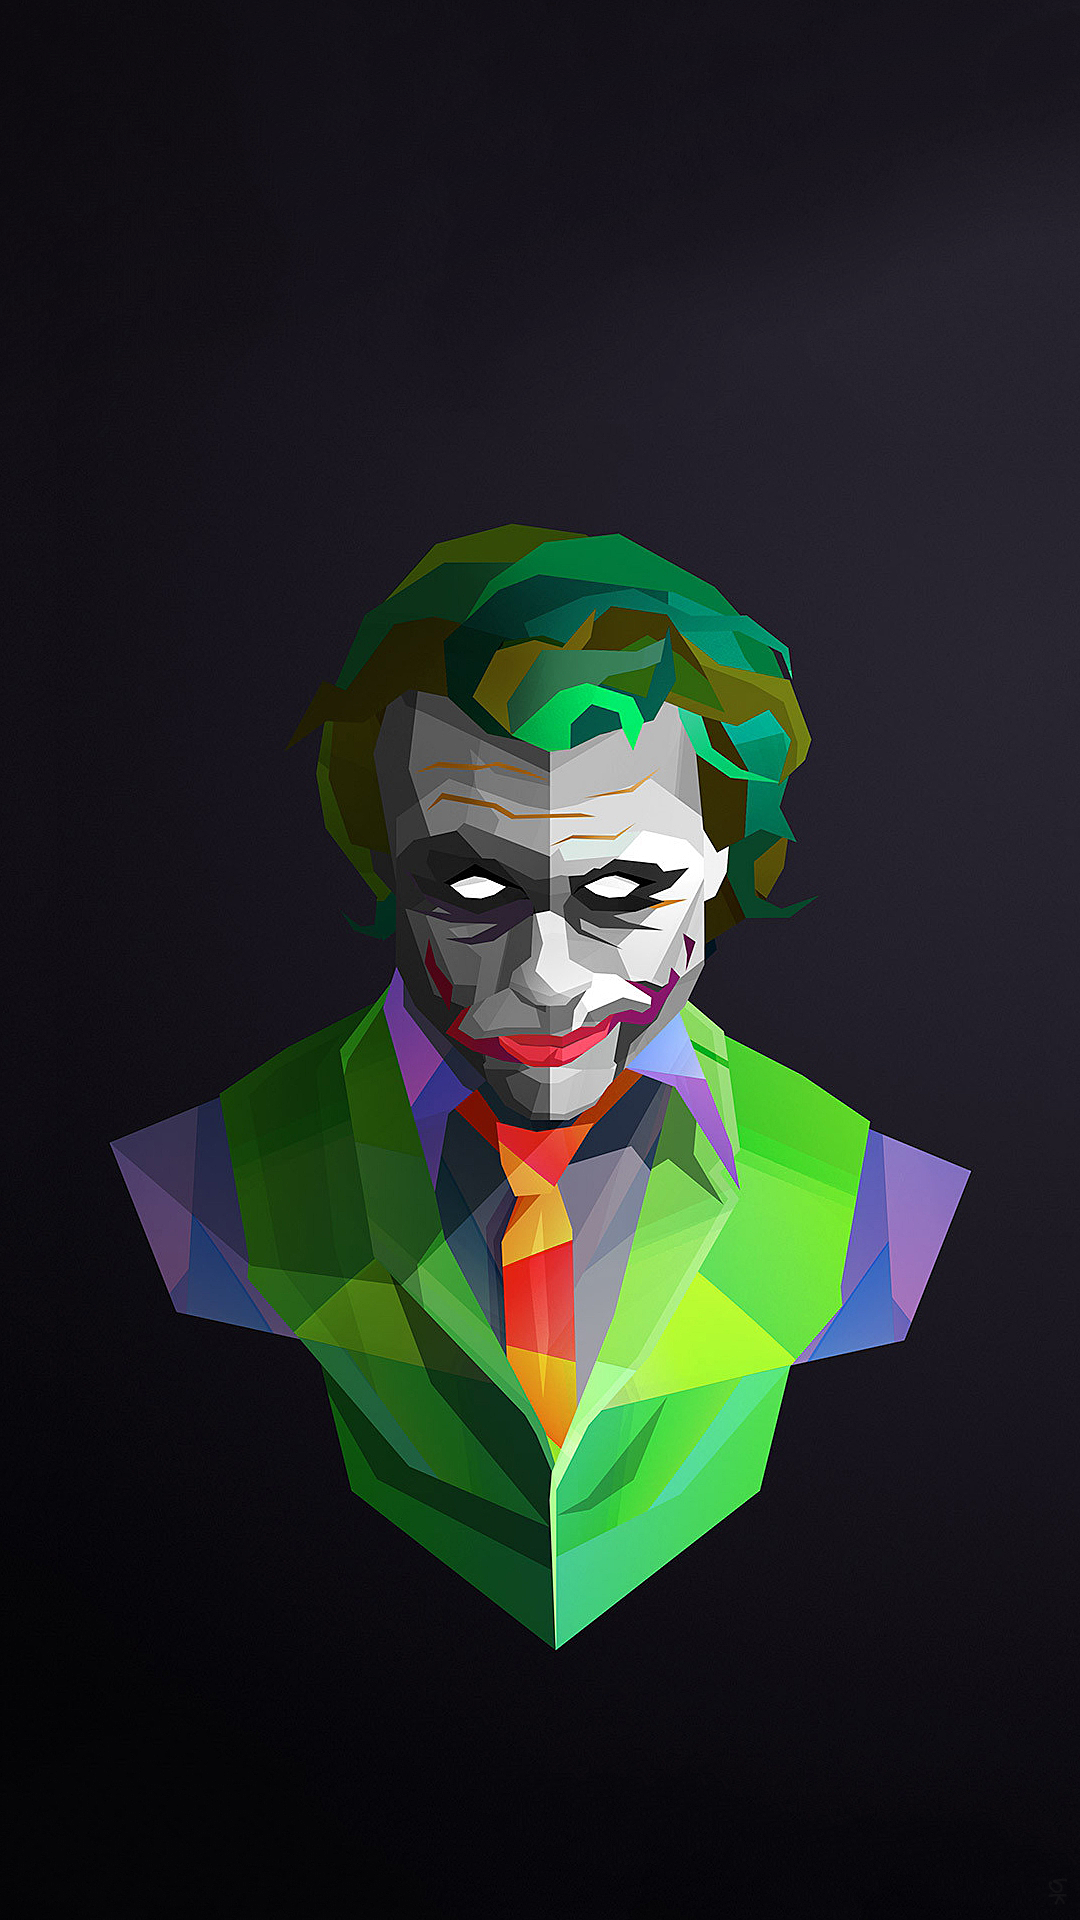 Iphone Wallpaper Joker